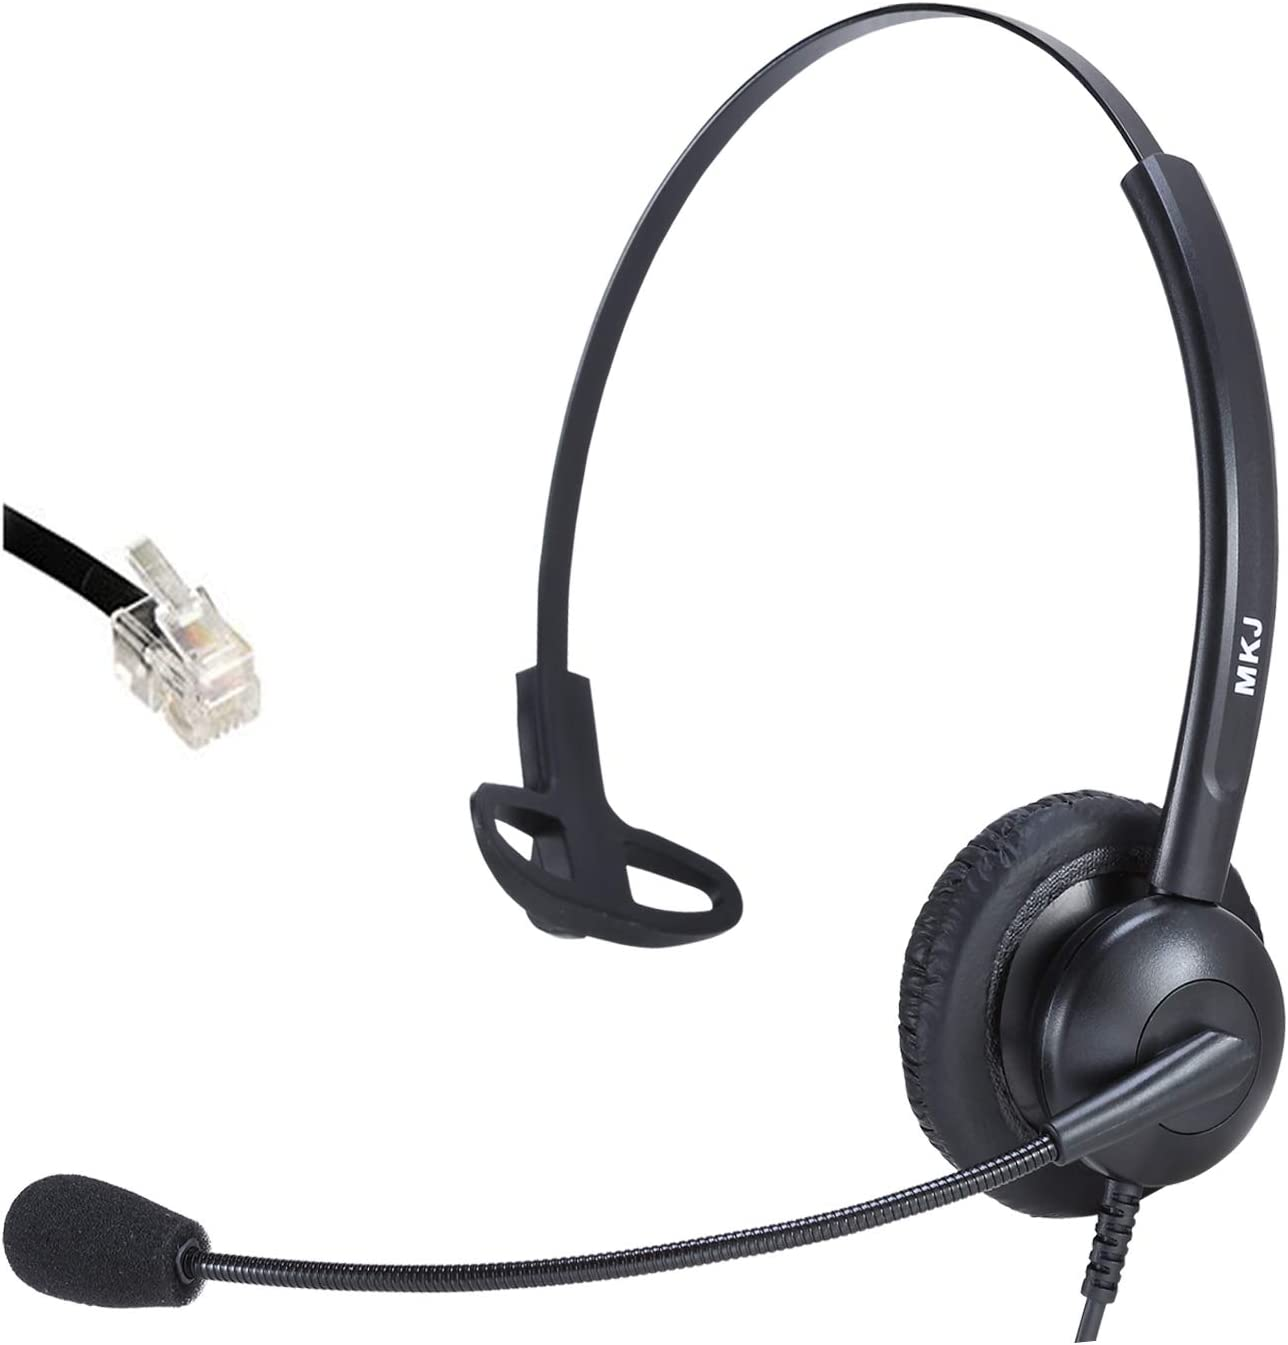 Call Center Telephone Headset Mono Office Phone Headset with Microphone for deskphone Avaya Aastra AudioCodes Atcom Fanvil Nortel